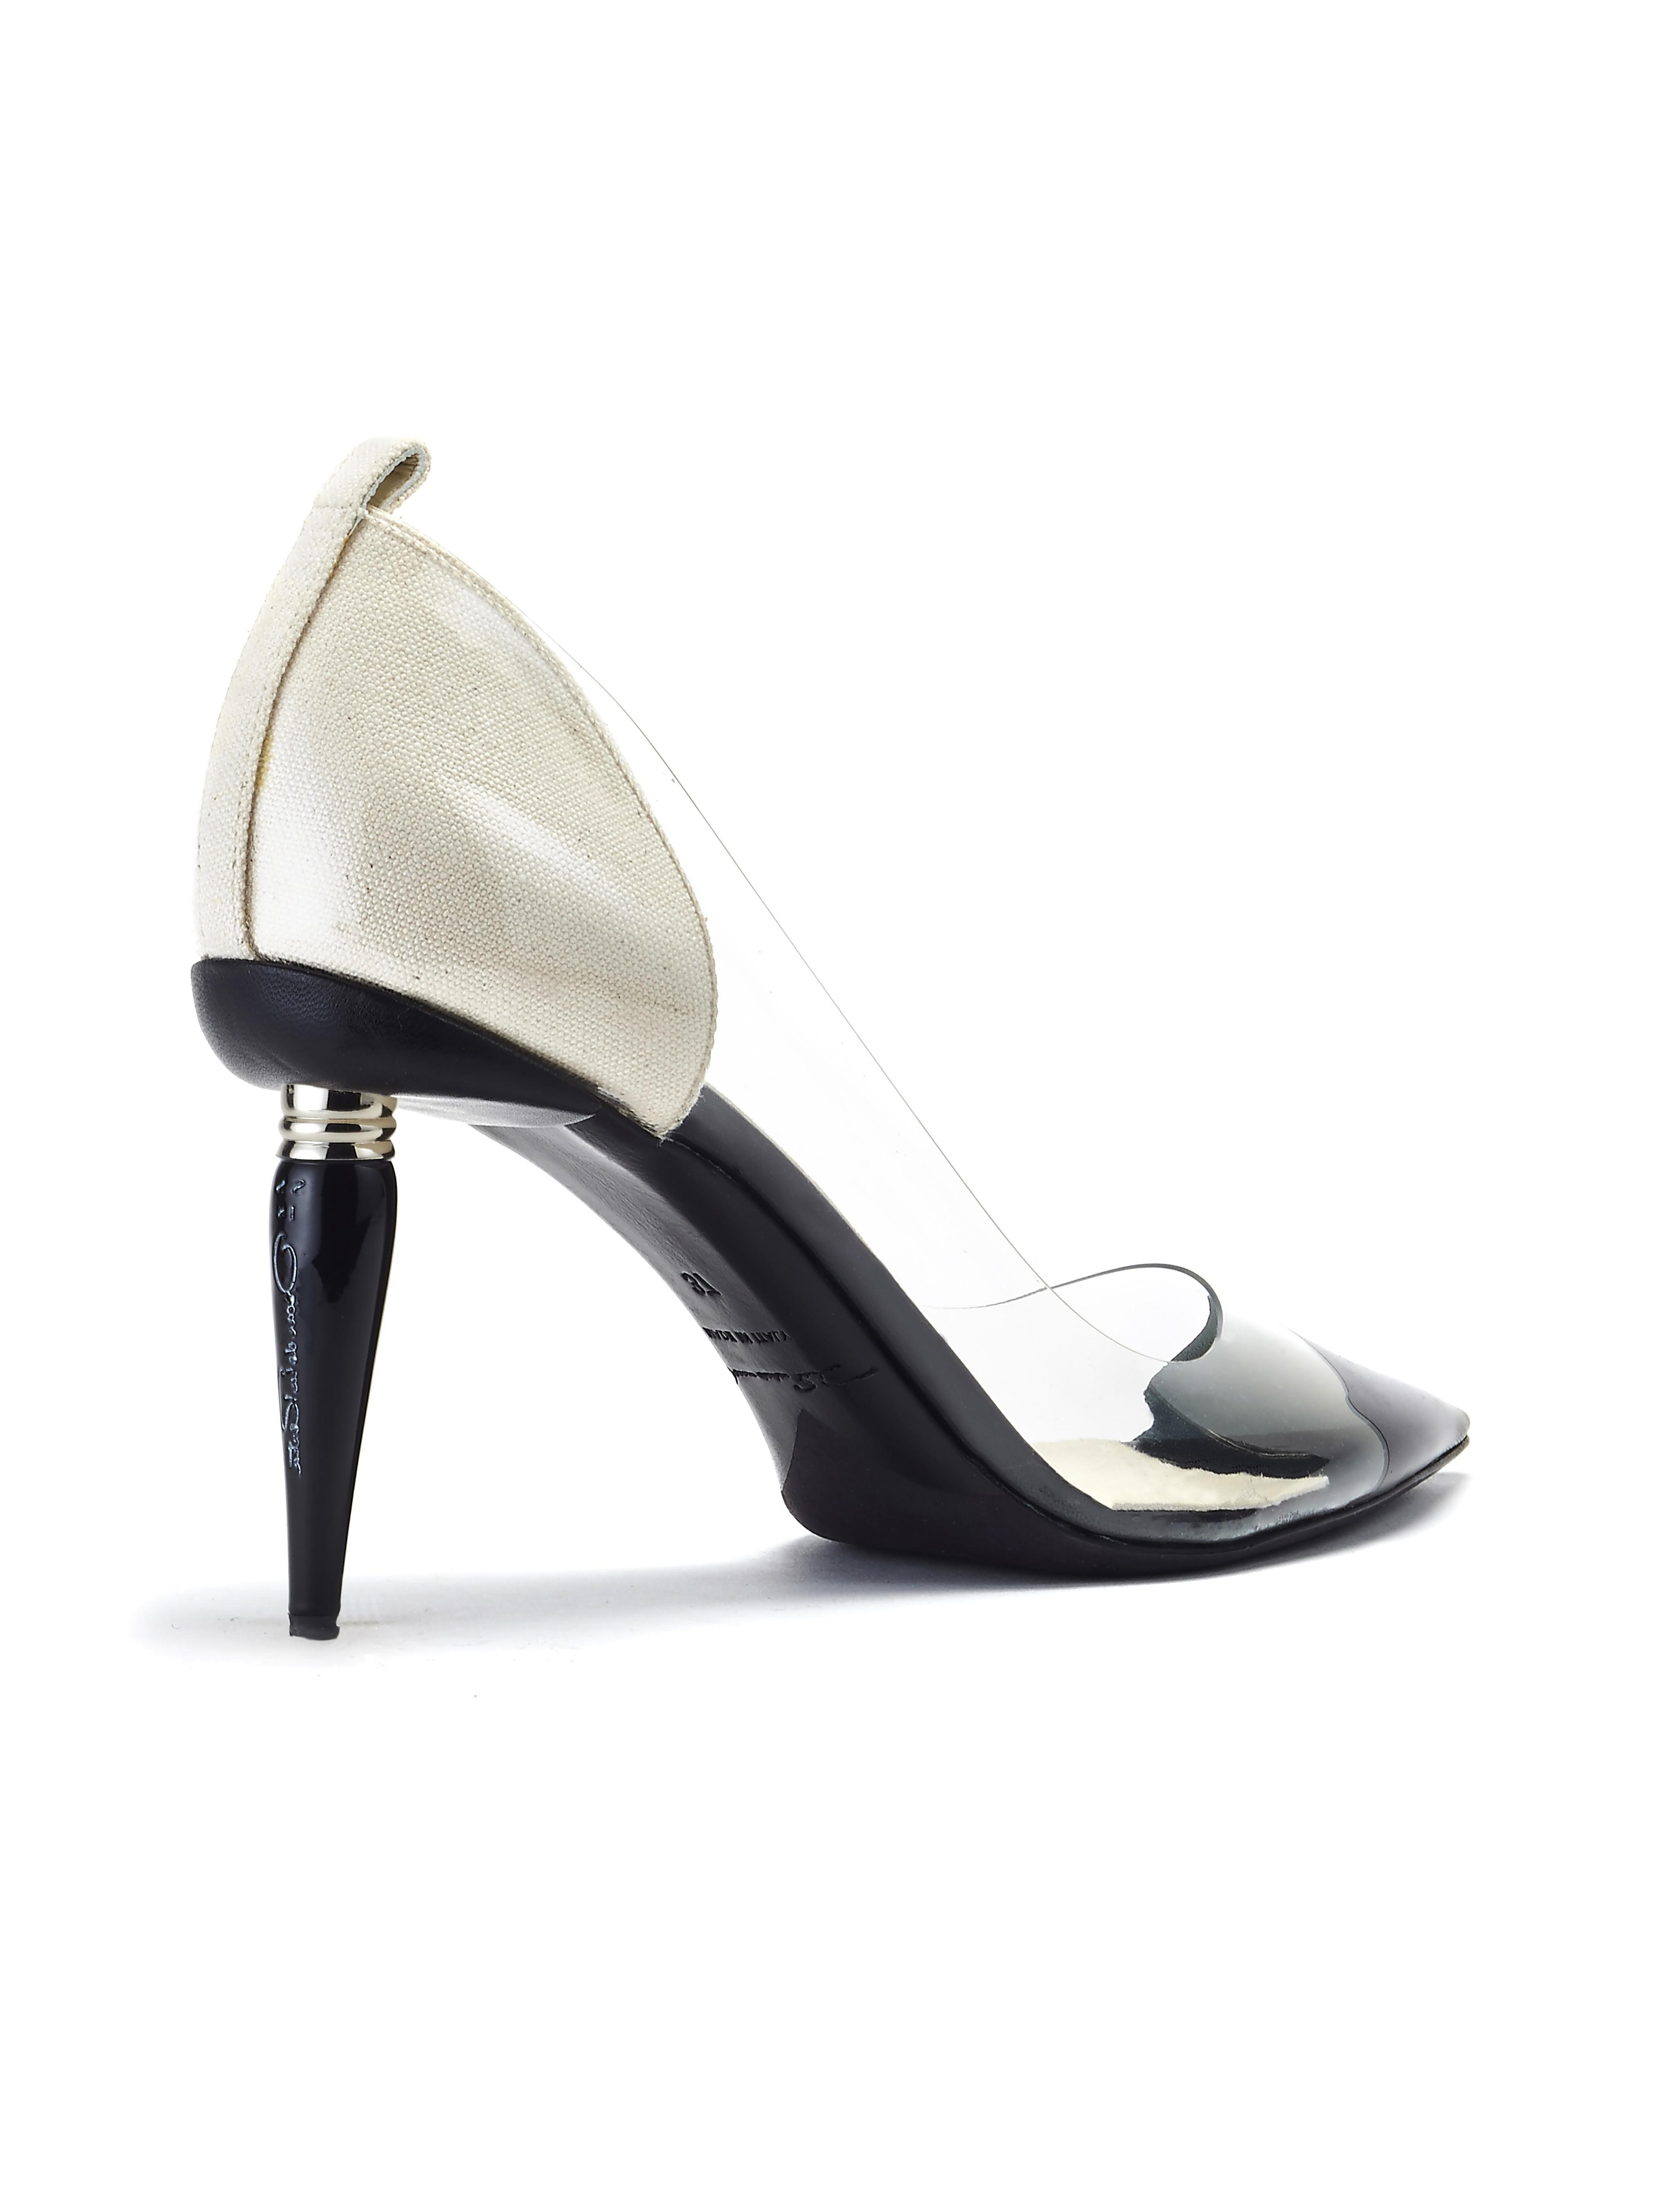 Oscar de la Renta dipped Mariacarla pumps real online outlet store online quality free shipping for sale new arrival online 8hwJE6w9L